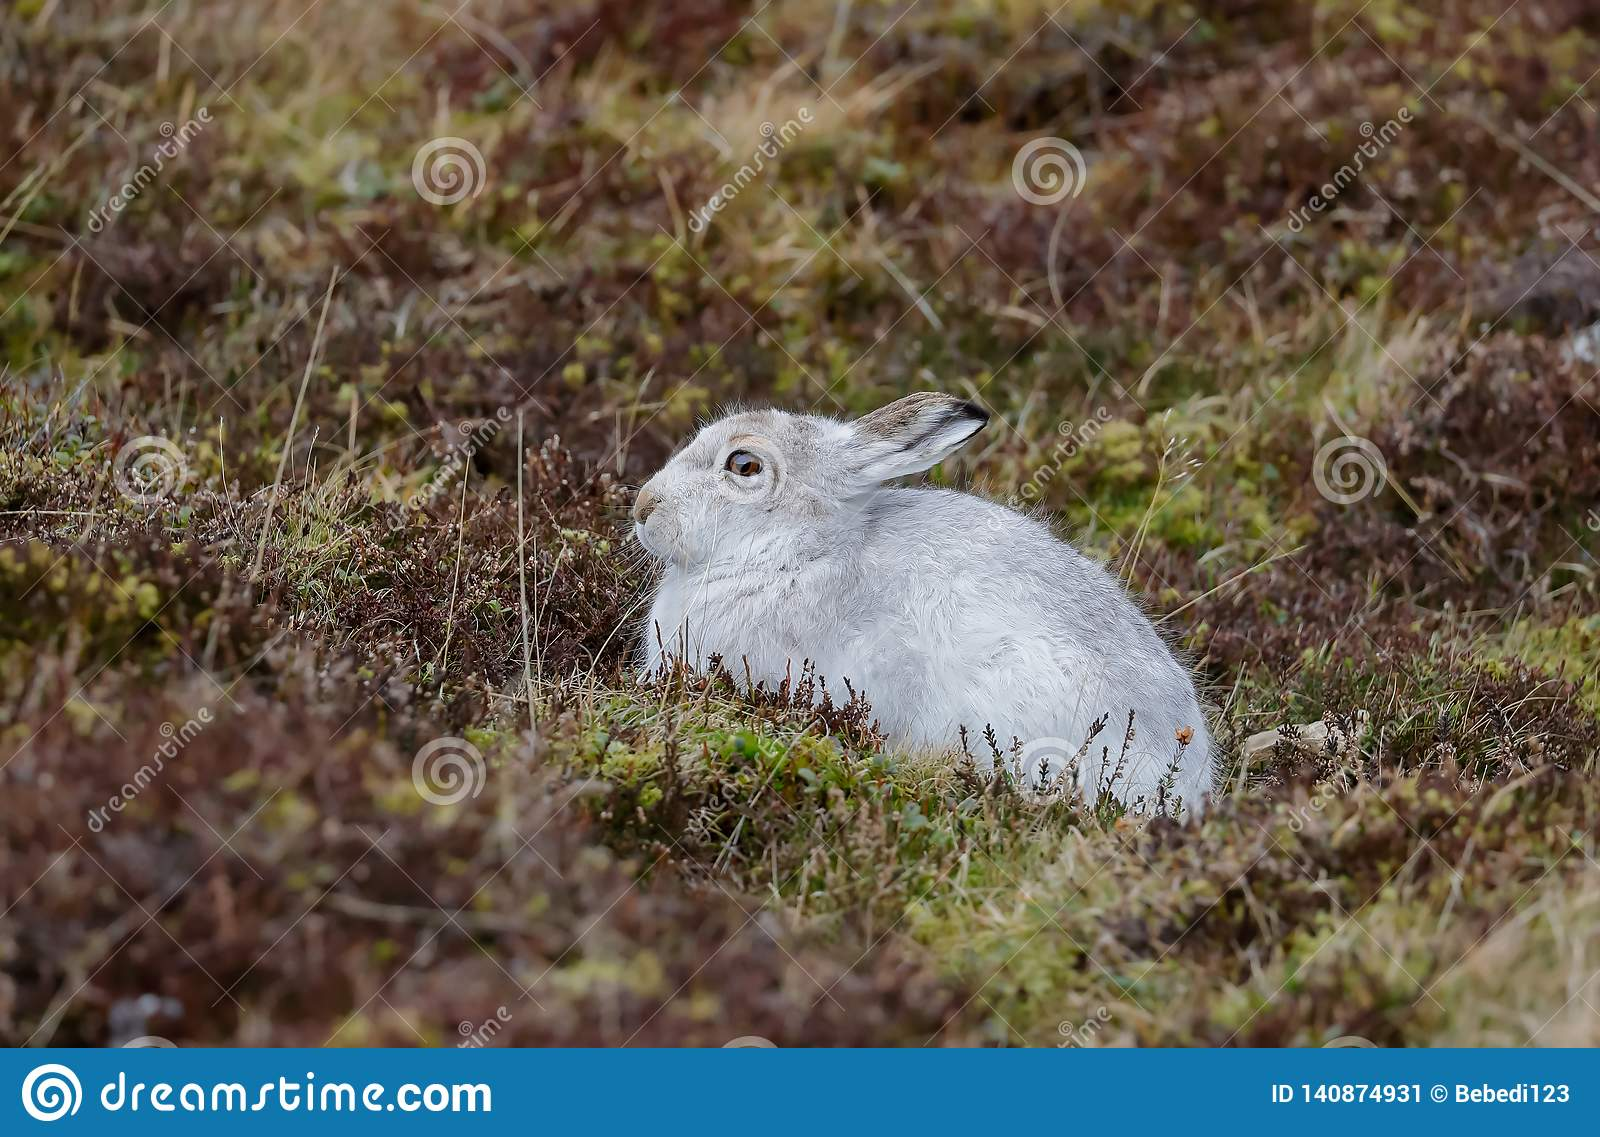 A Mountain hare outside its burrow